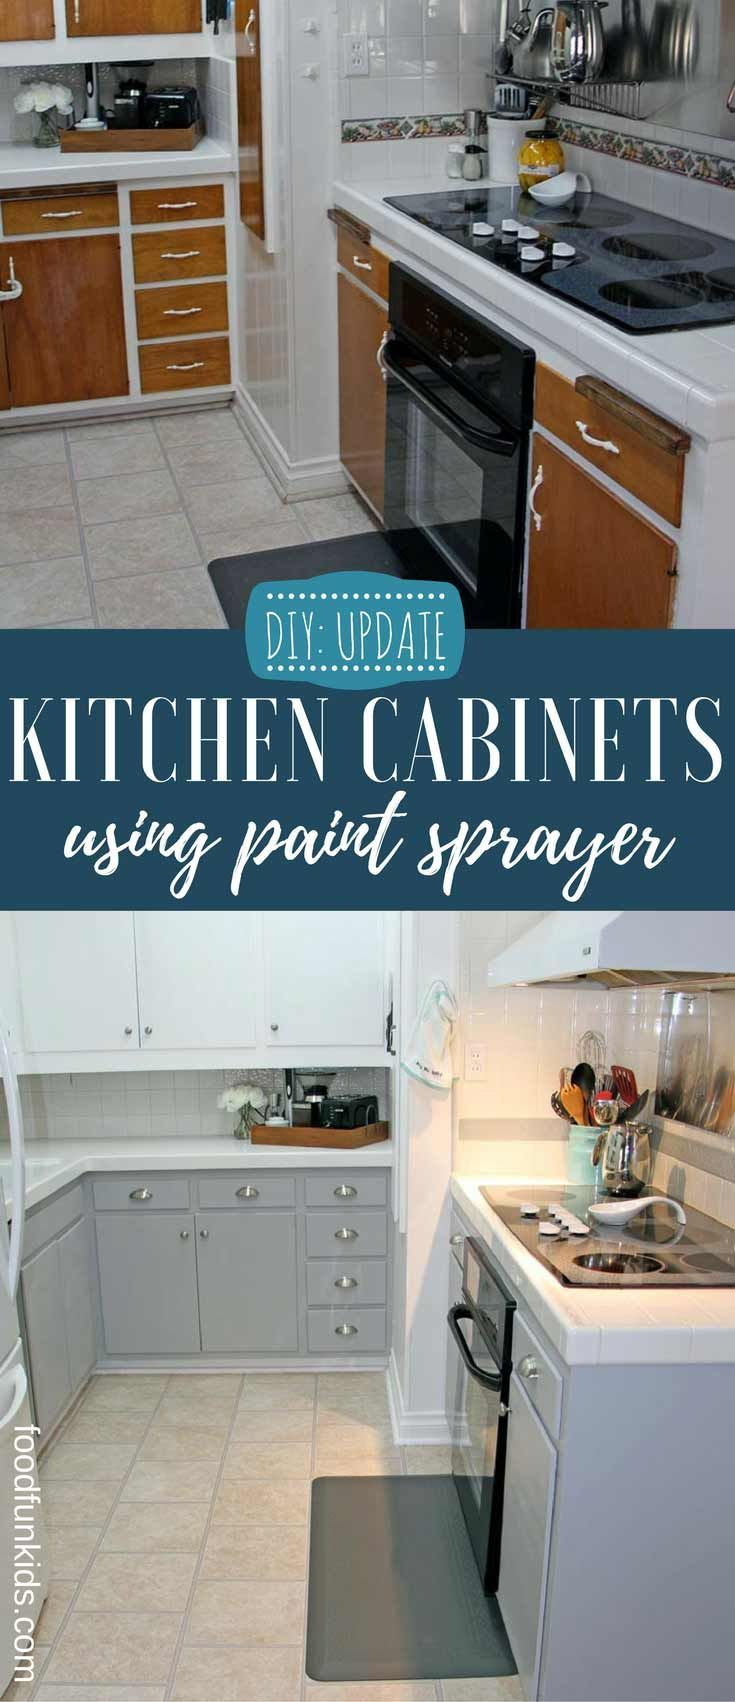 Diy Updating Kitchen Cabinets With Paint Sprayer Food Fun Kids Update Kitchen Cabinets Kitchen Cabinets Diy Kitchen Cabinets